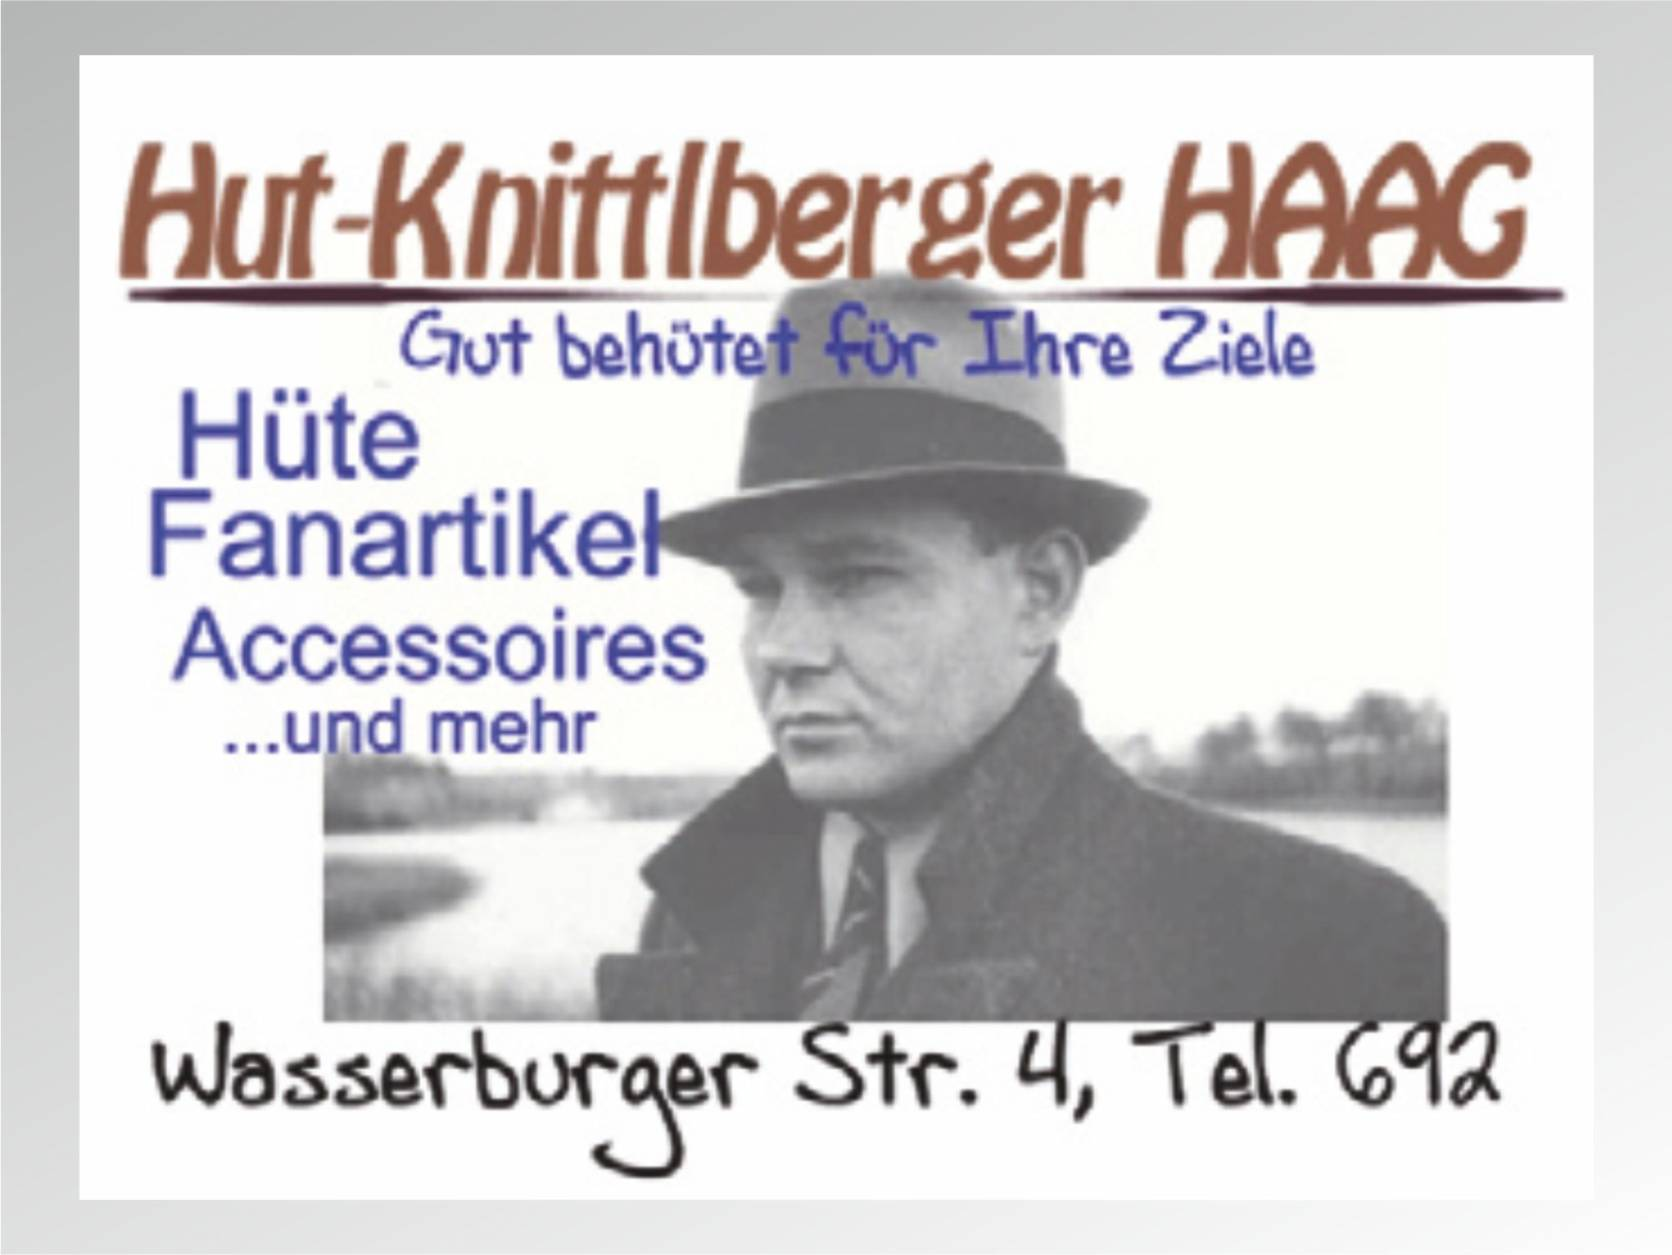 Hut Knittlberger